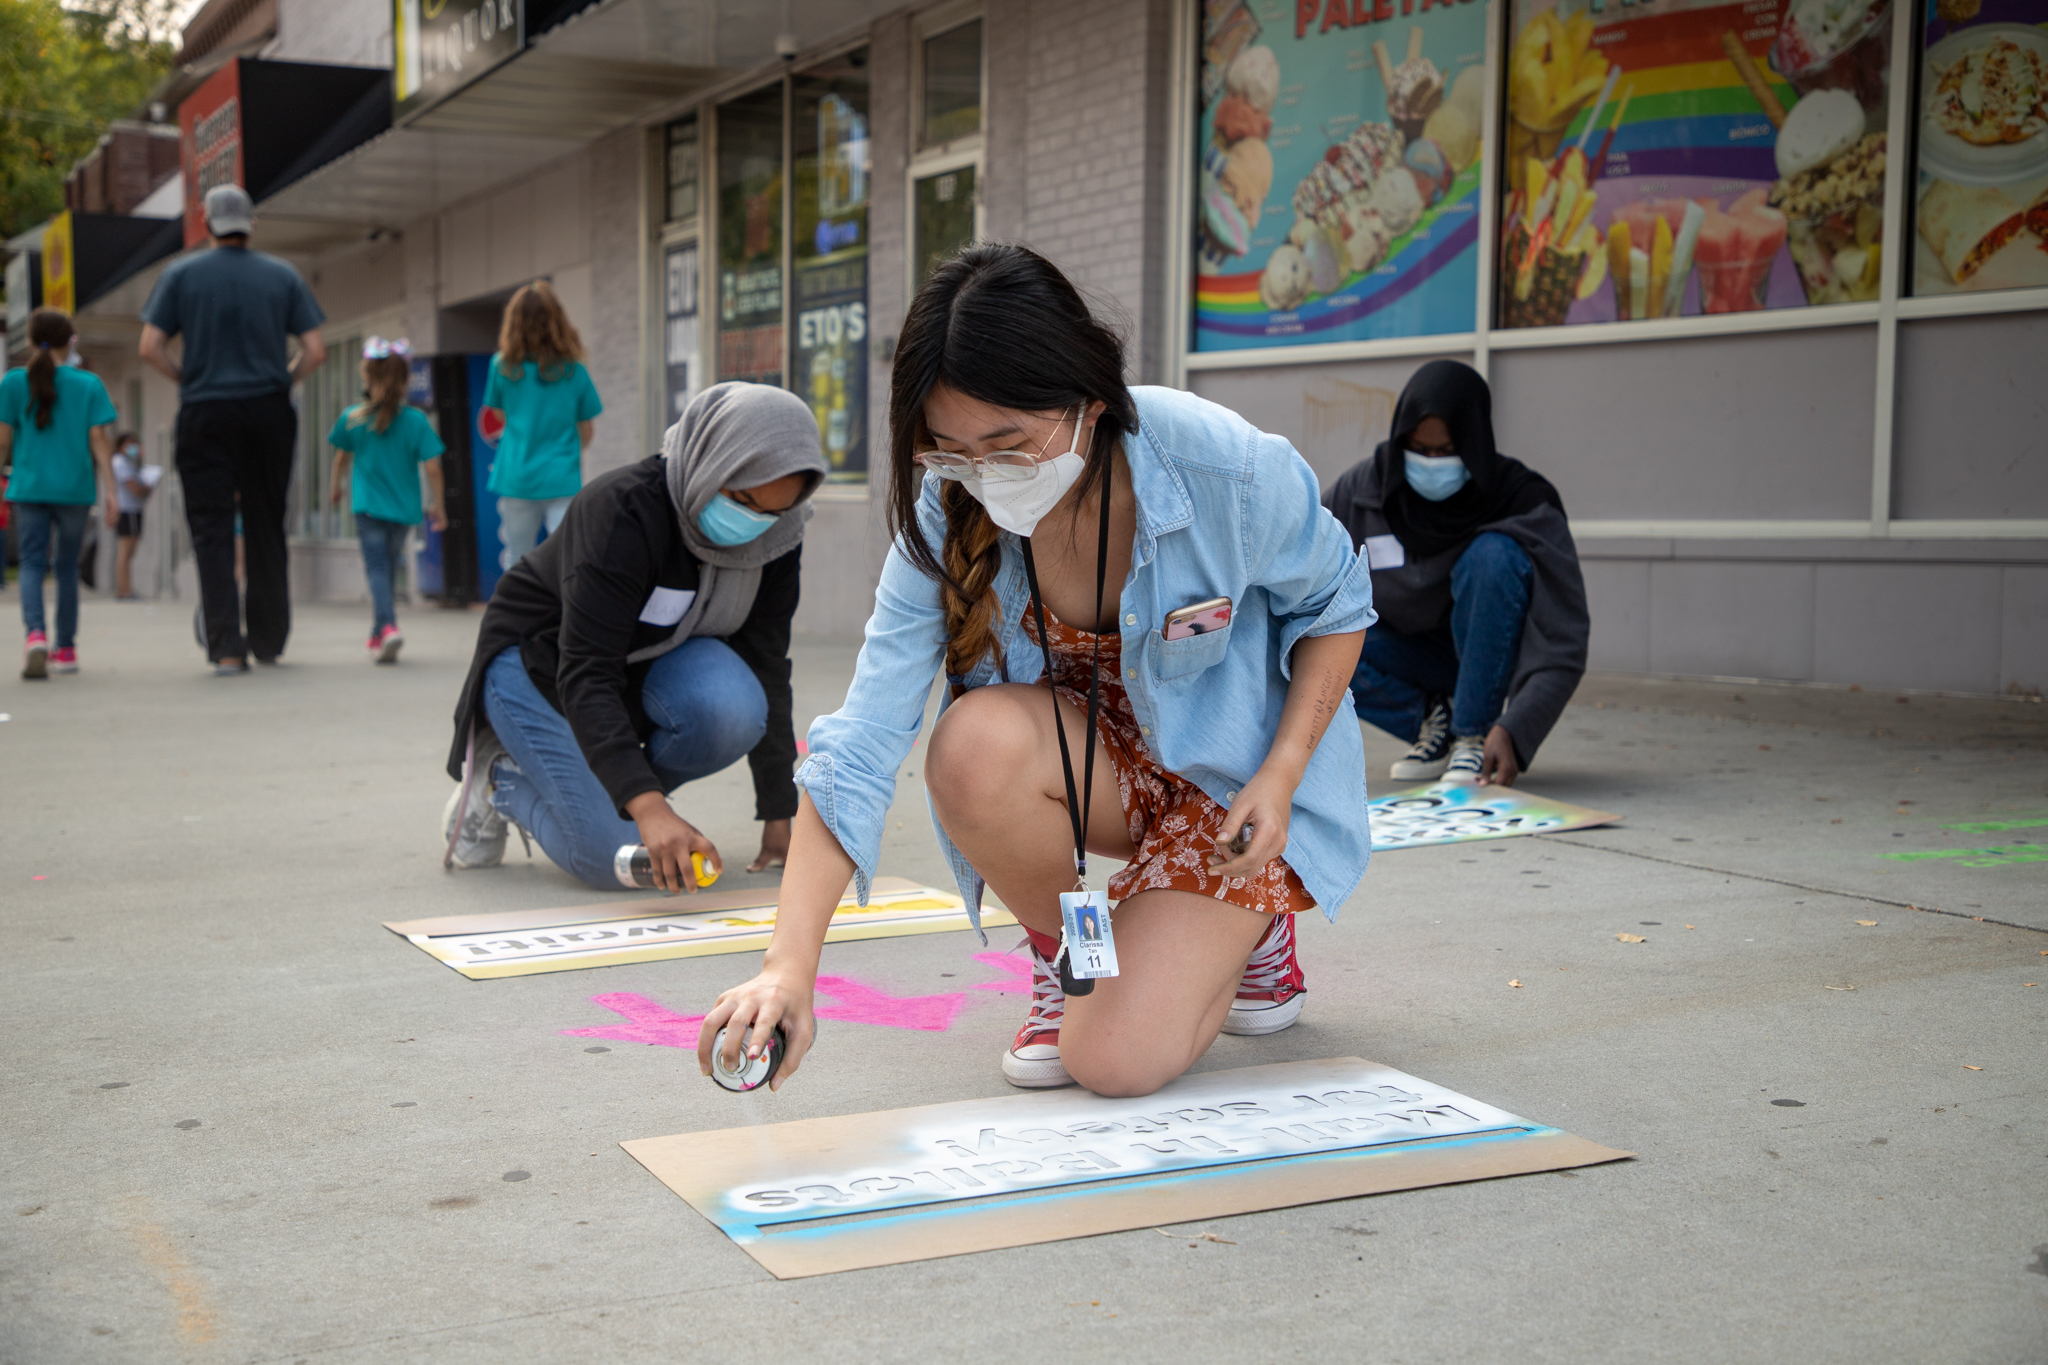 Volunteer, Clarissa Tan spray chalks a message on the ground off of 11th and G Street to encourage voter participation in the upcoming general election on Friday, Sept. 25 in Lincoln.